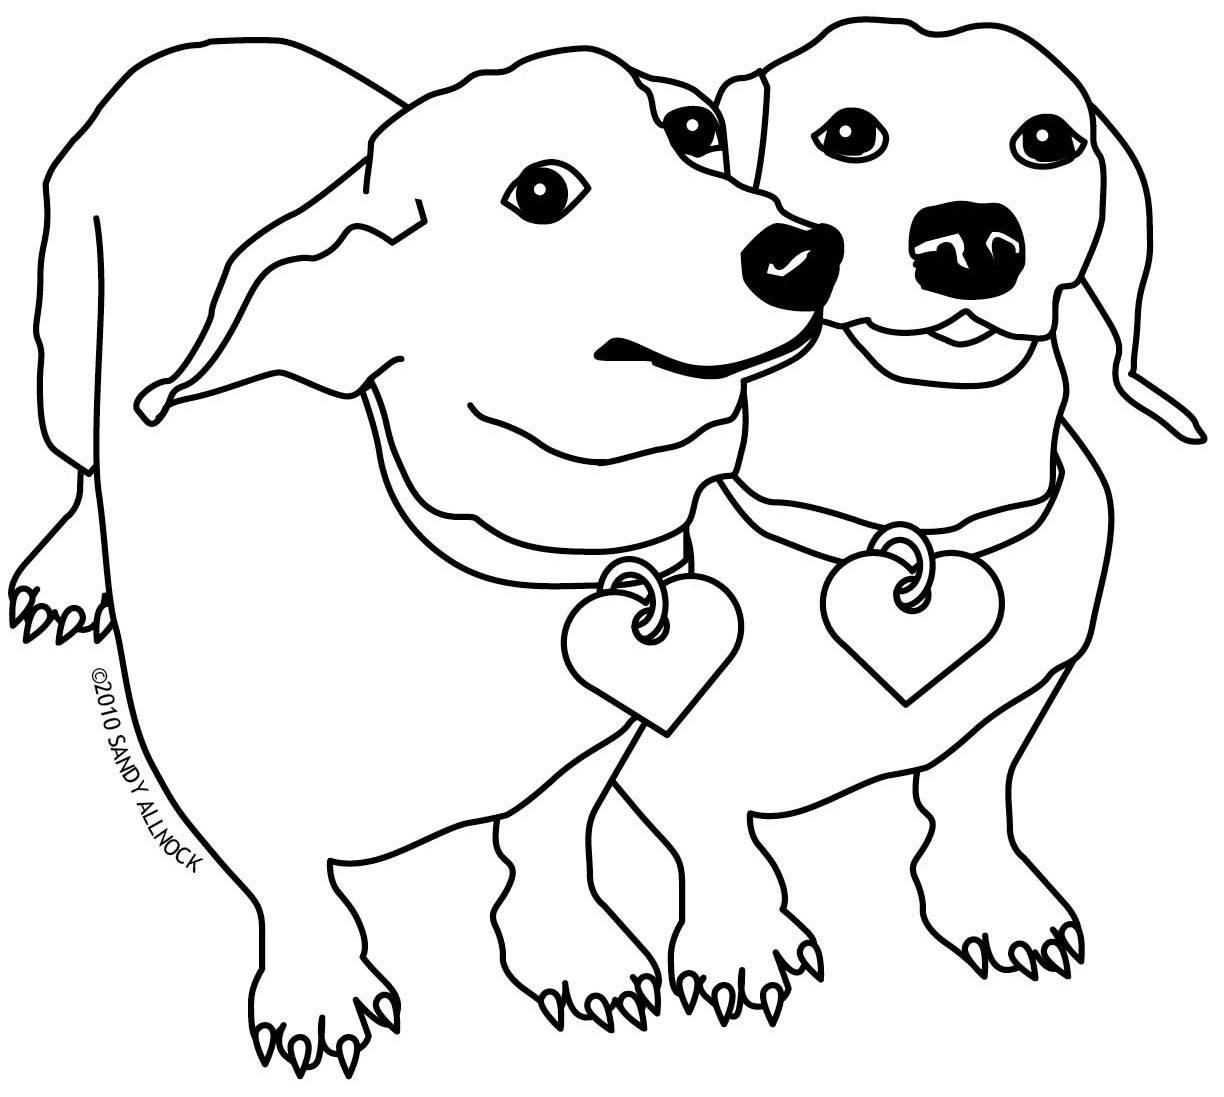 Daschund Coloring Book  Dachshund clipart coloring page Pencil and in color